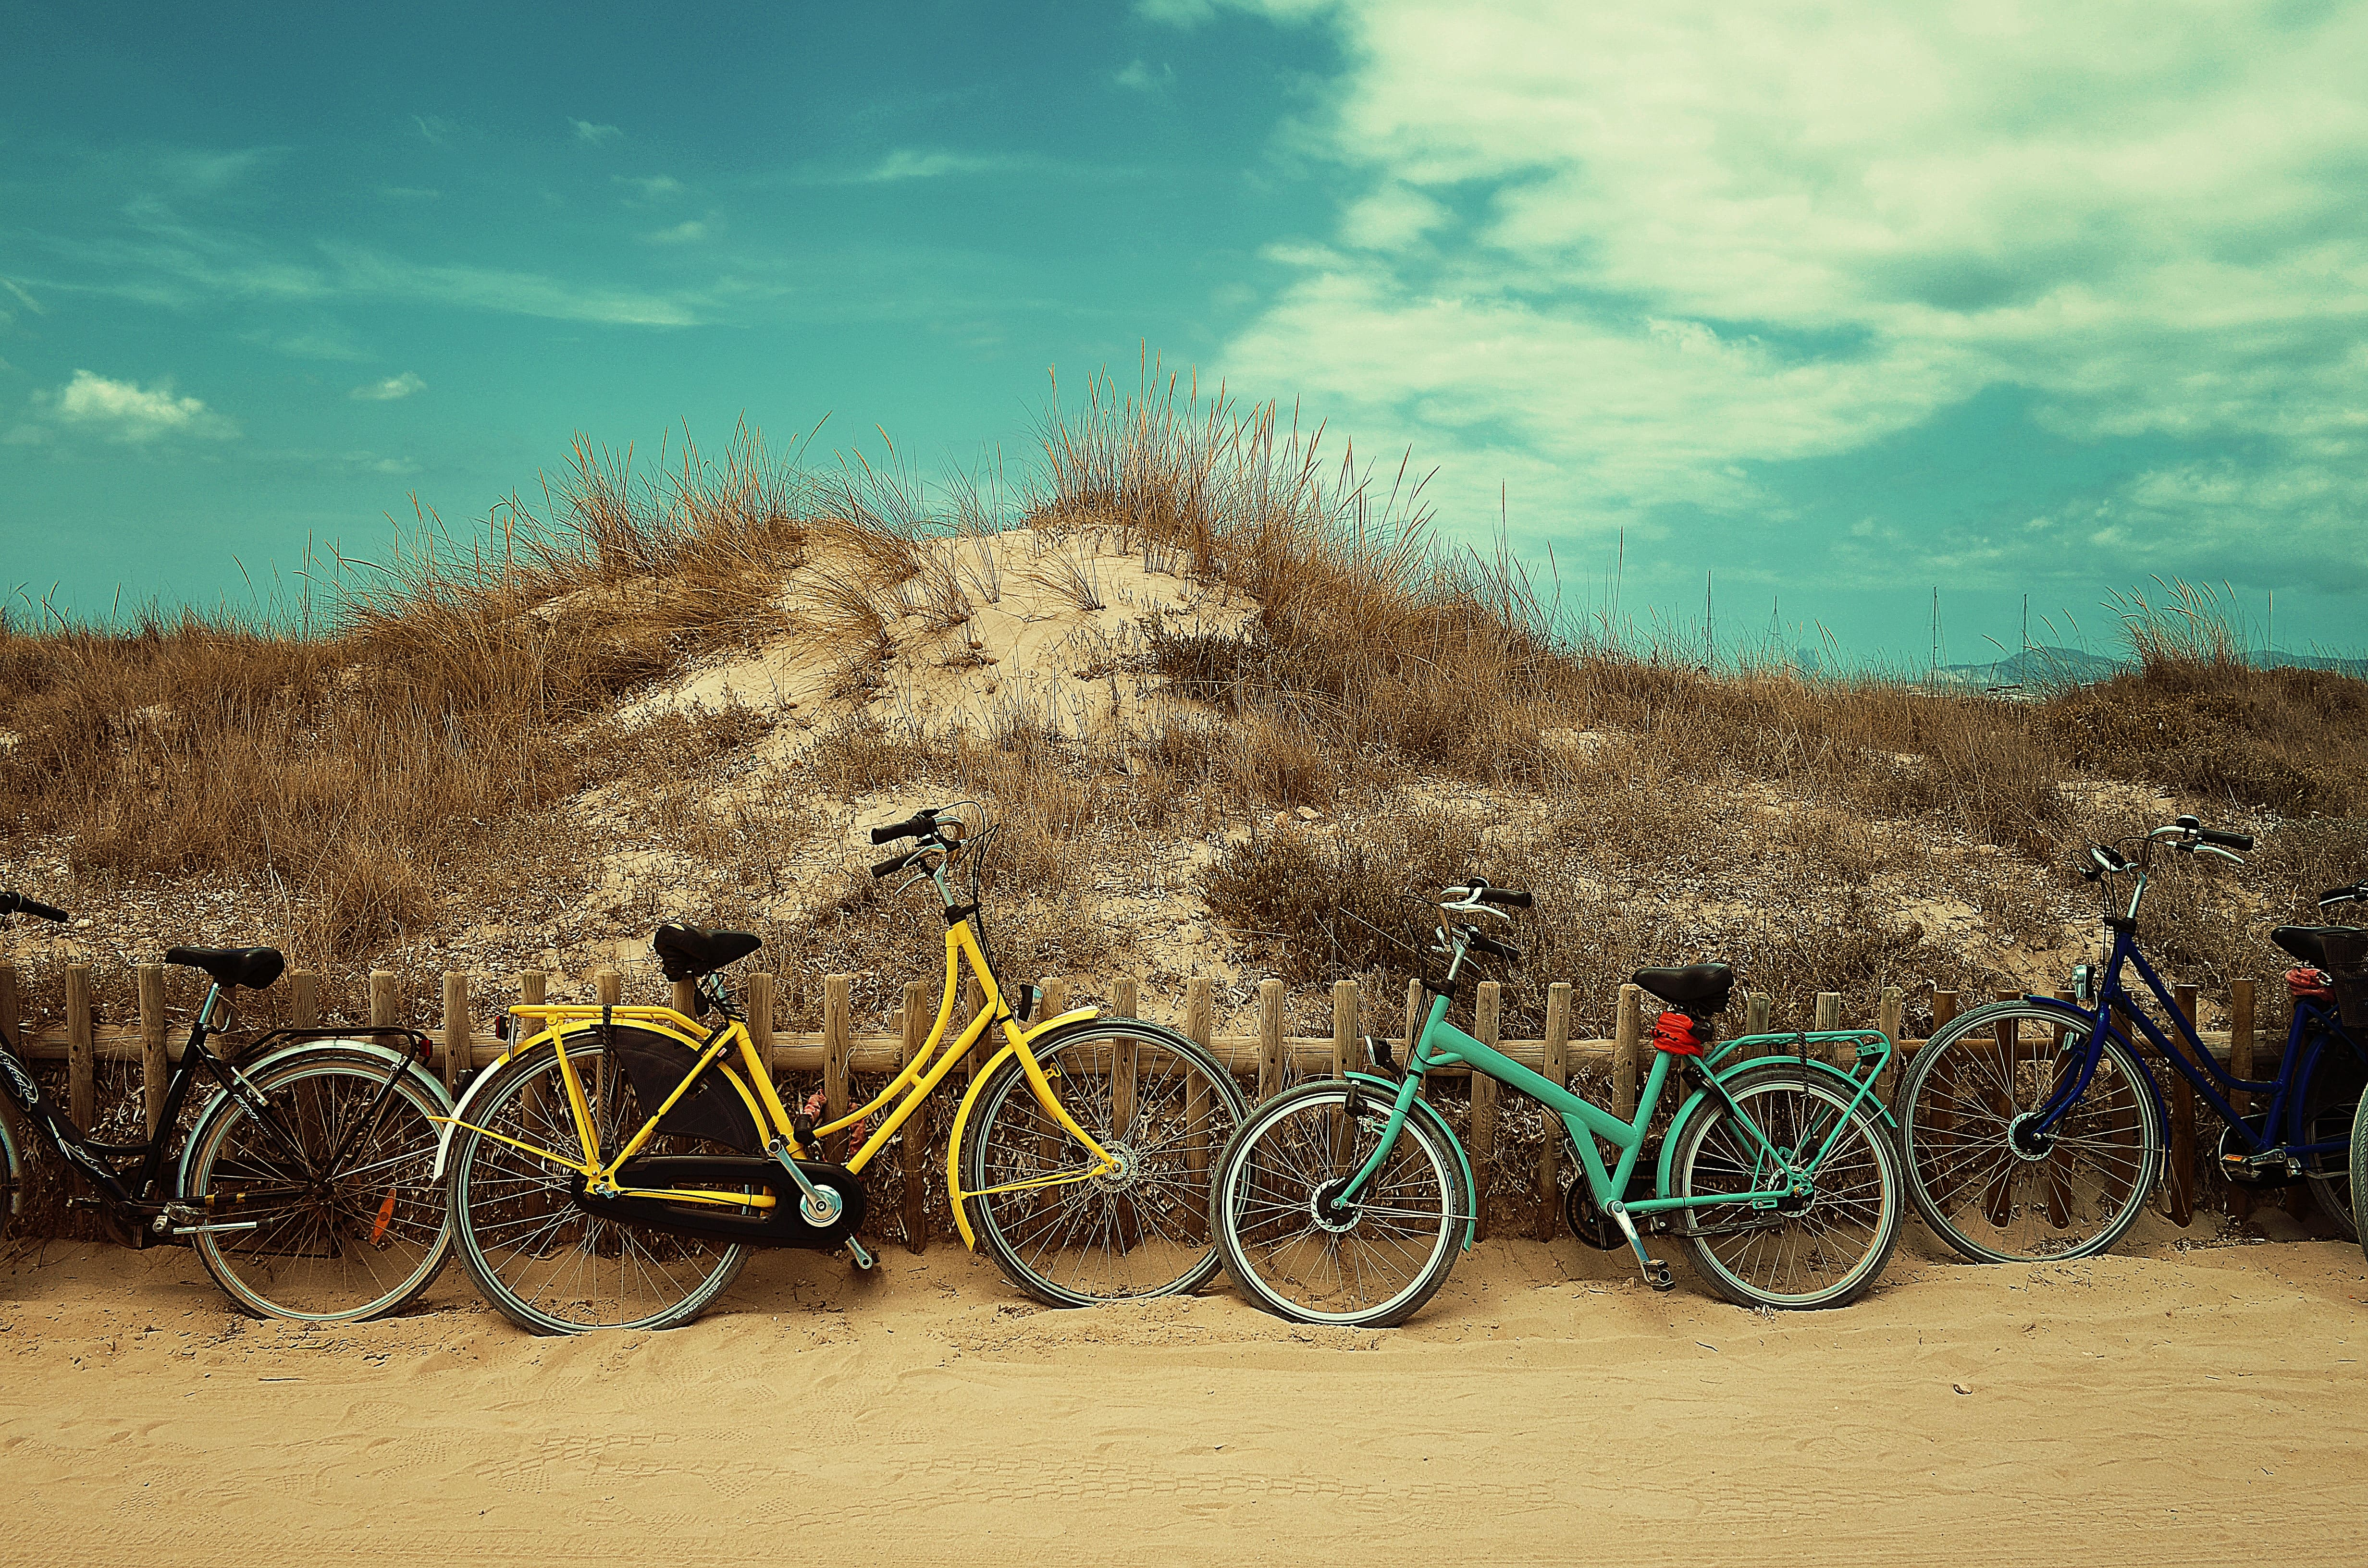 Travel destinations for Riding Sports